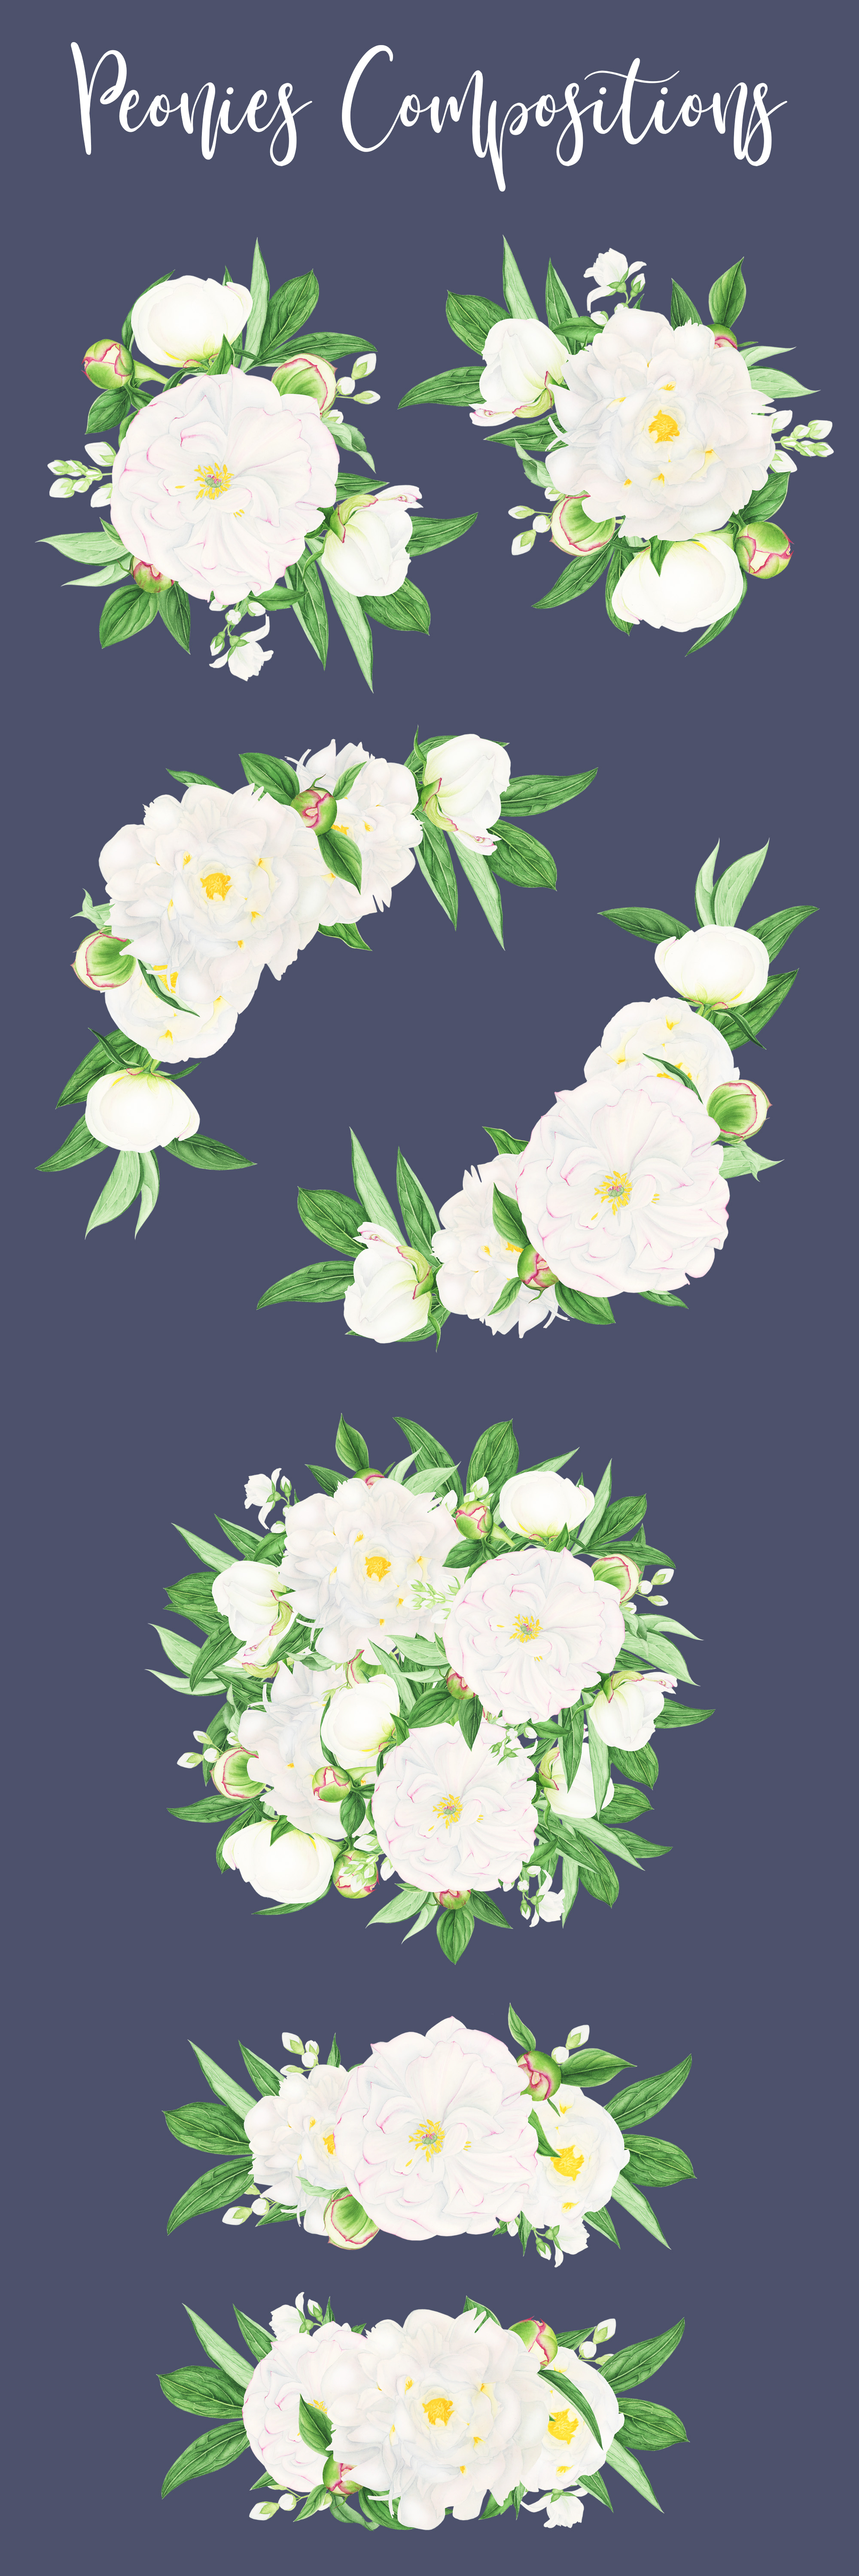 Watercolor Peonies Compositions example image 2